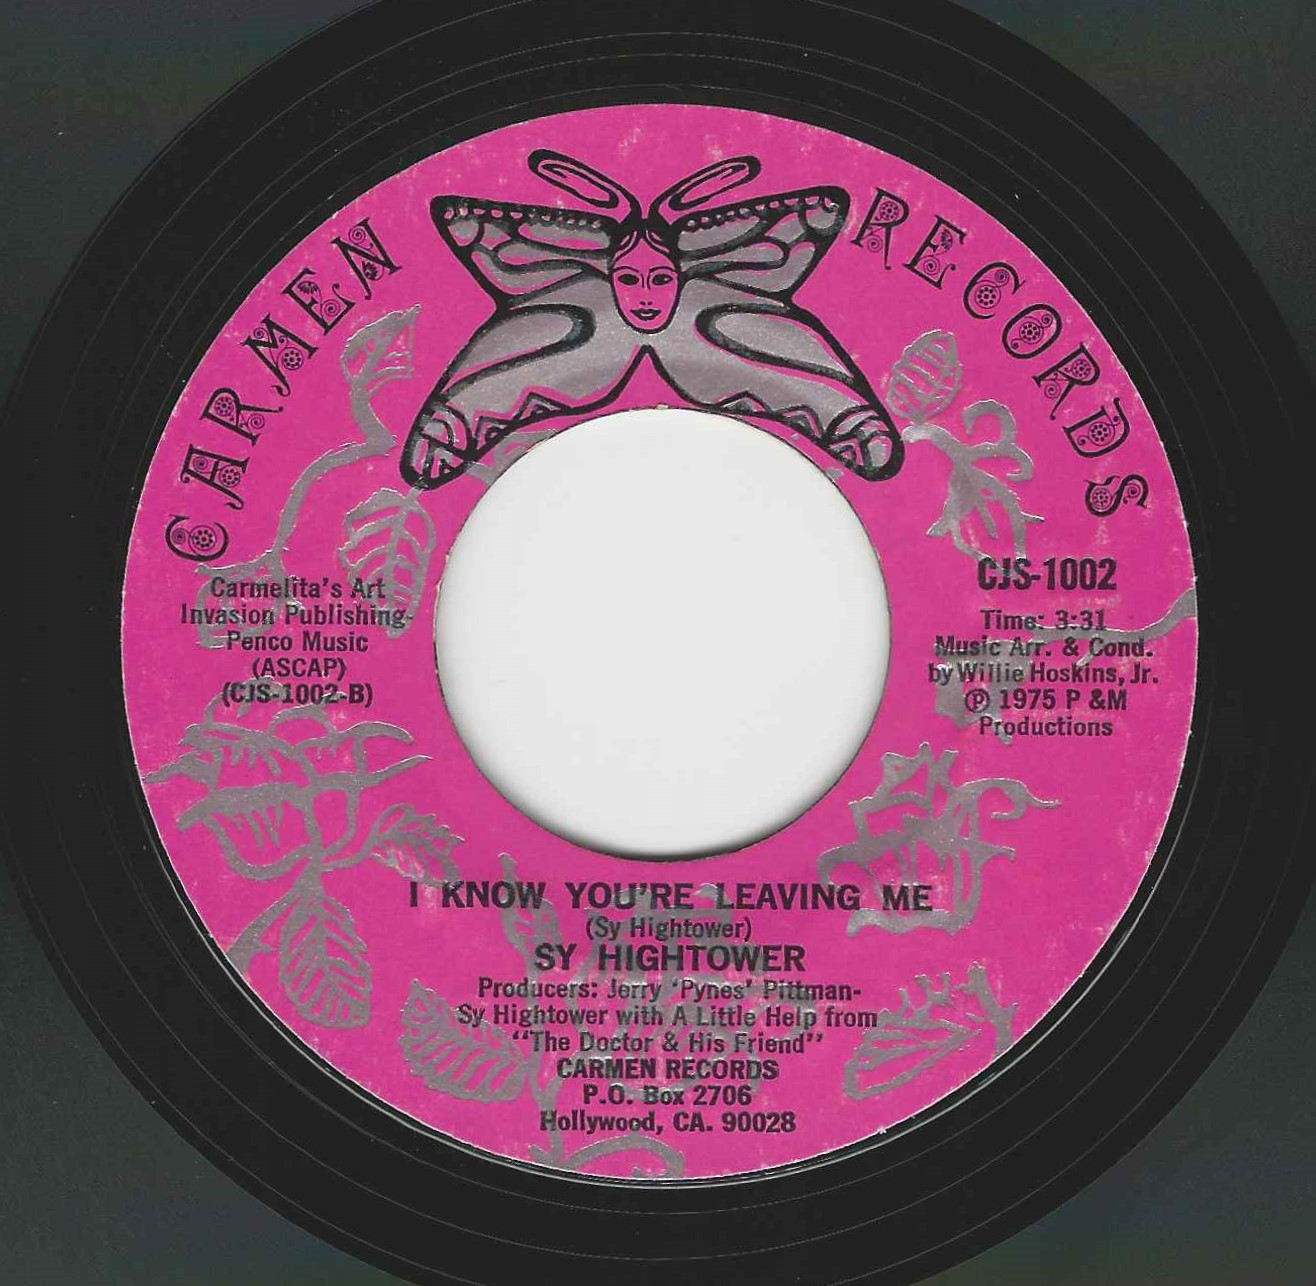 Rare Soul Vinyl | Northern Soul originals from Anglo-American the